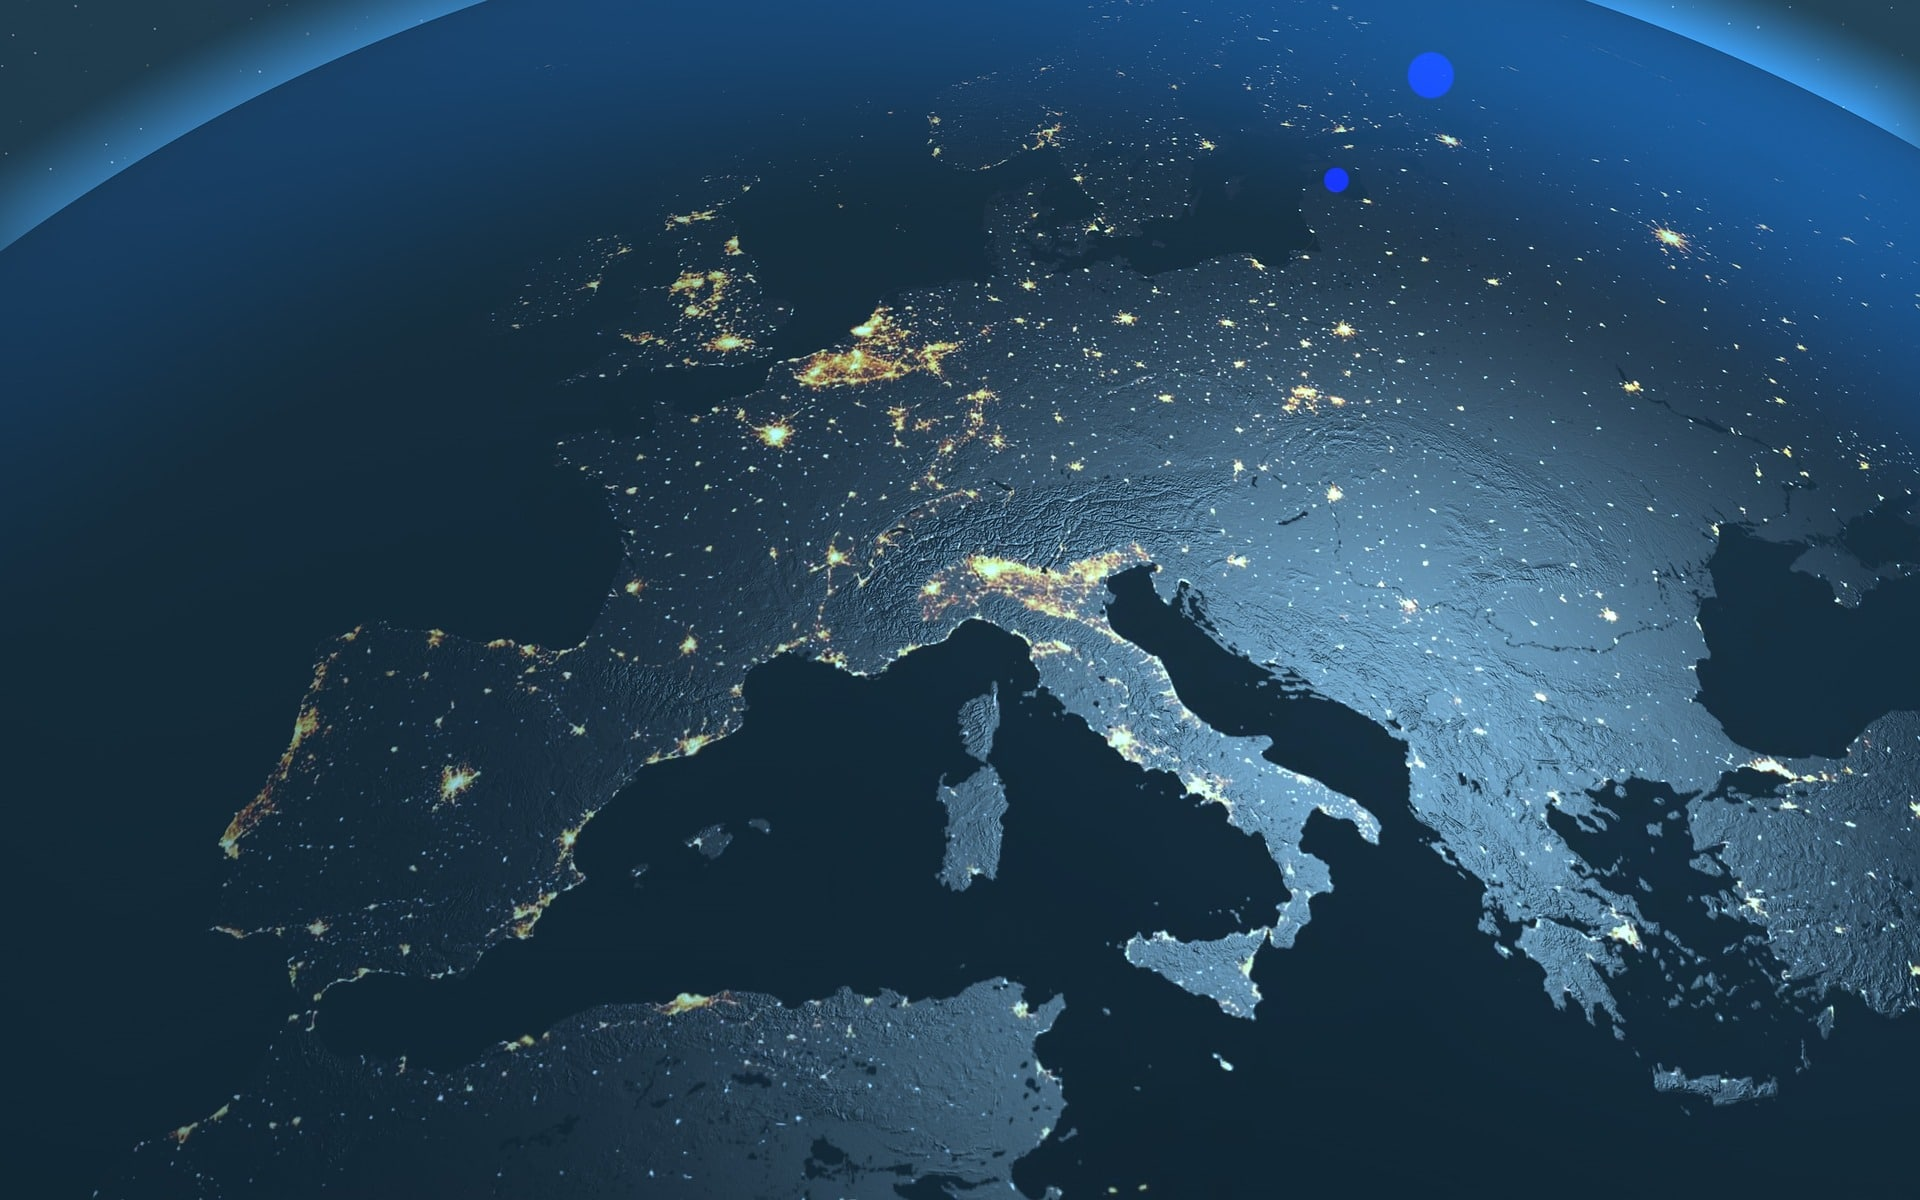 Europe at Night - Culture Under the Stars